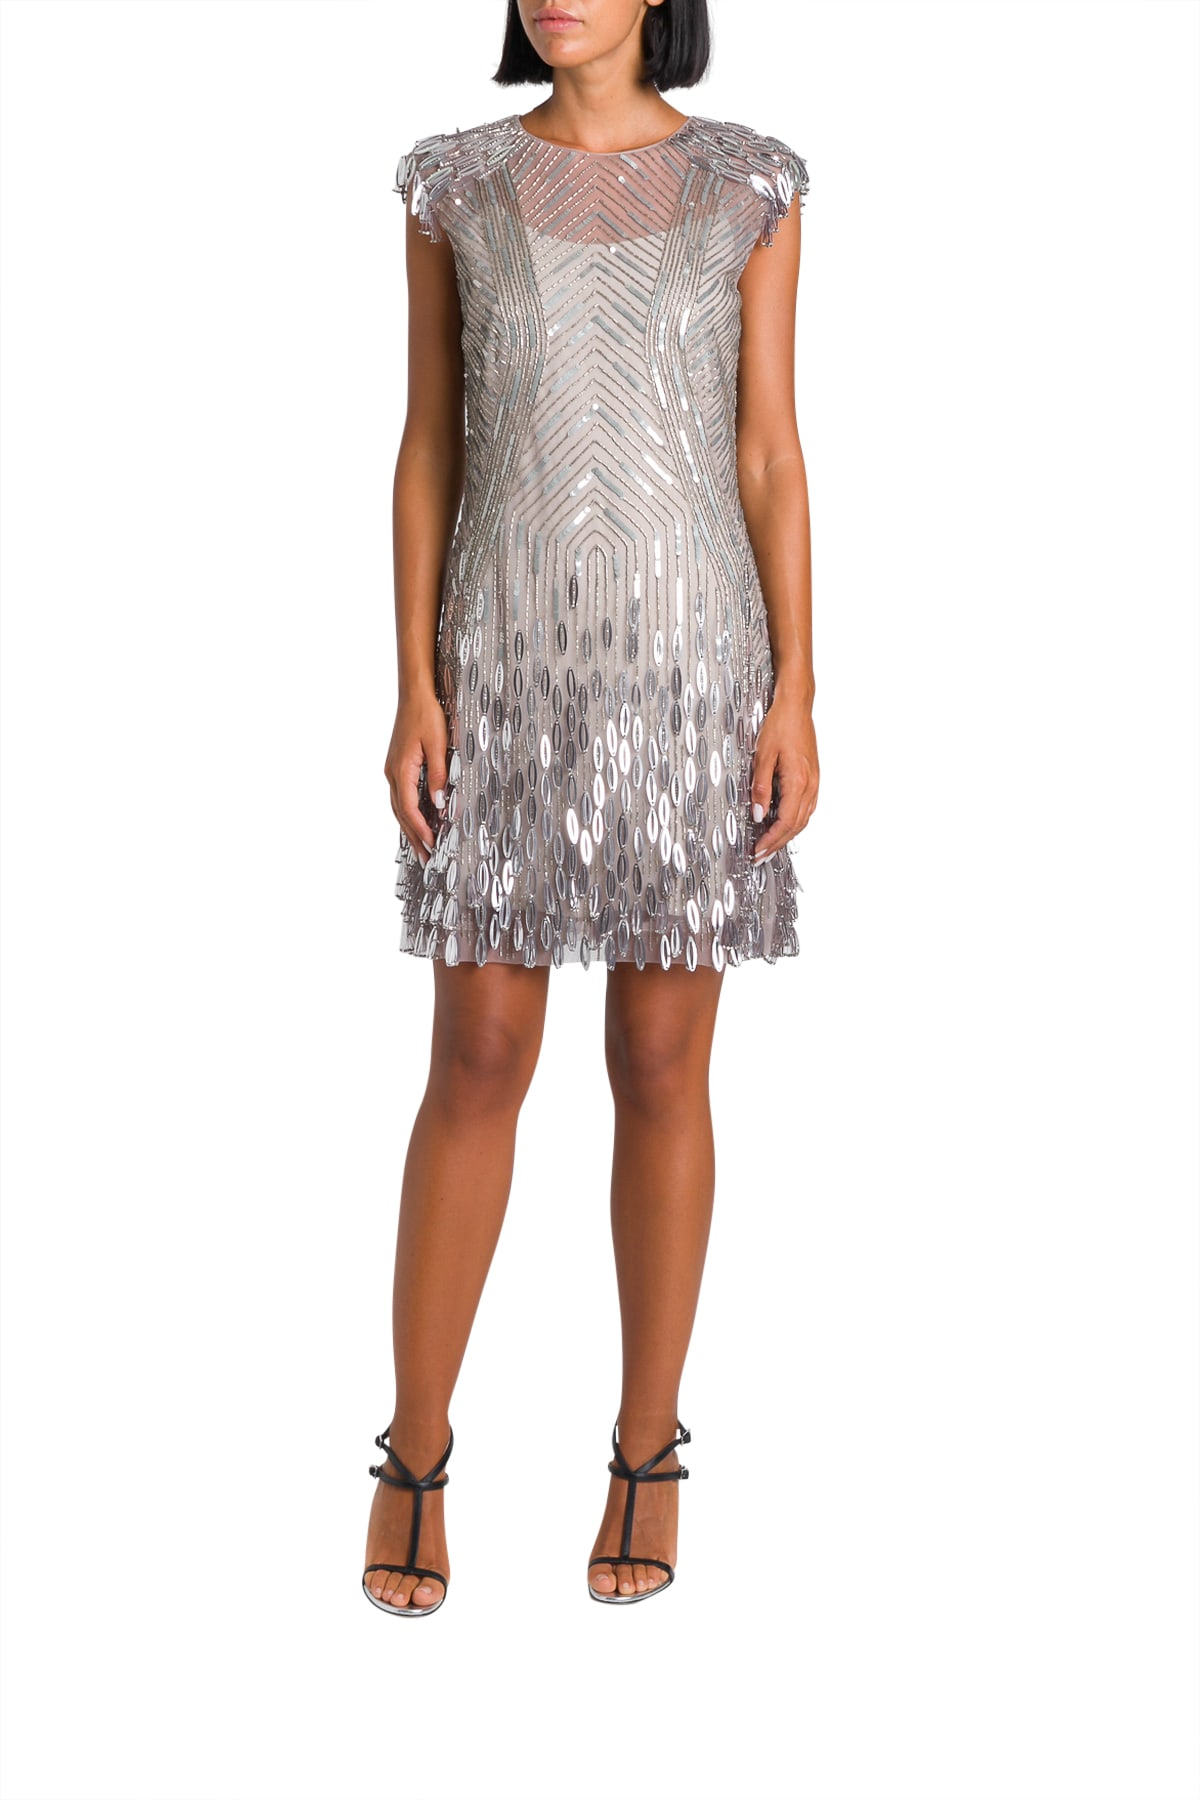 Alberta Ferretti Tulle Short Dress With Metallic Trimmings